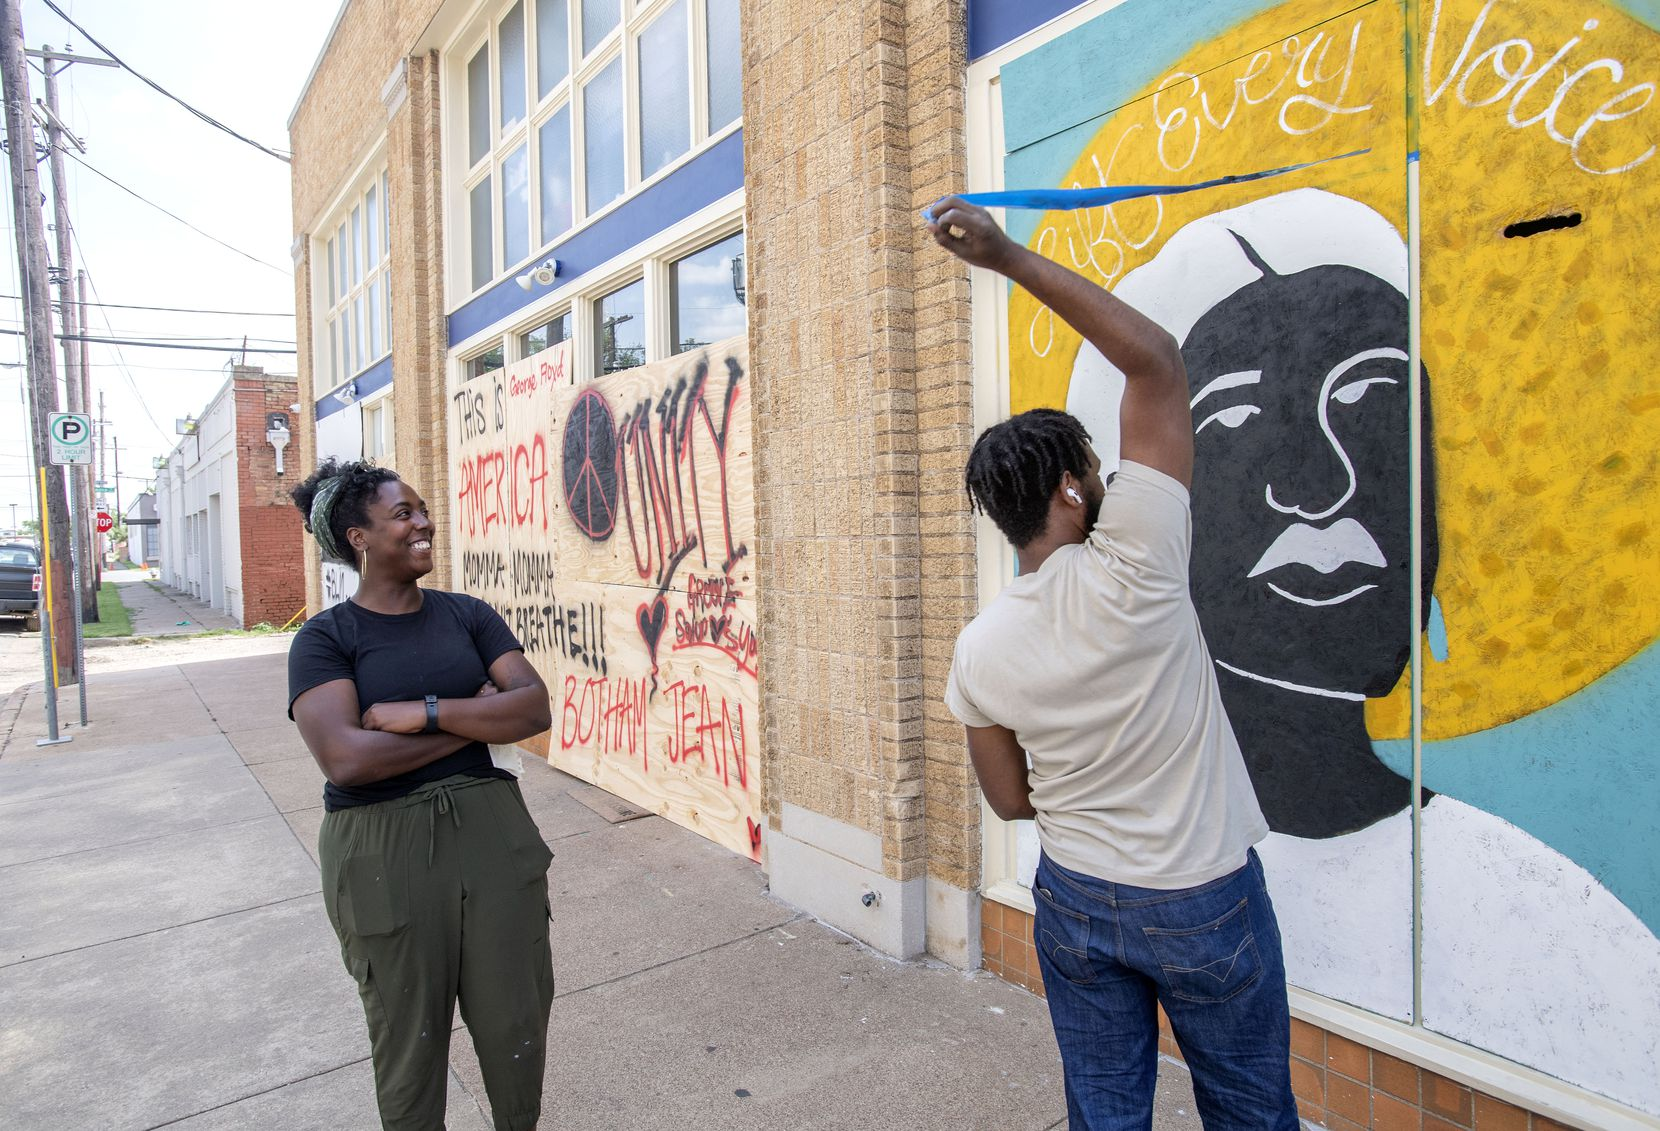 Desiree Vaniecia (left) watches as Joeneal Berry pulls masking tape off of a mural they painted on plywood on Monday, June 1, 2020 in Deep Ellum in Dallas.